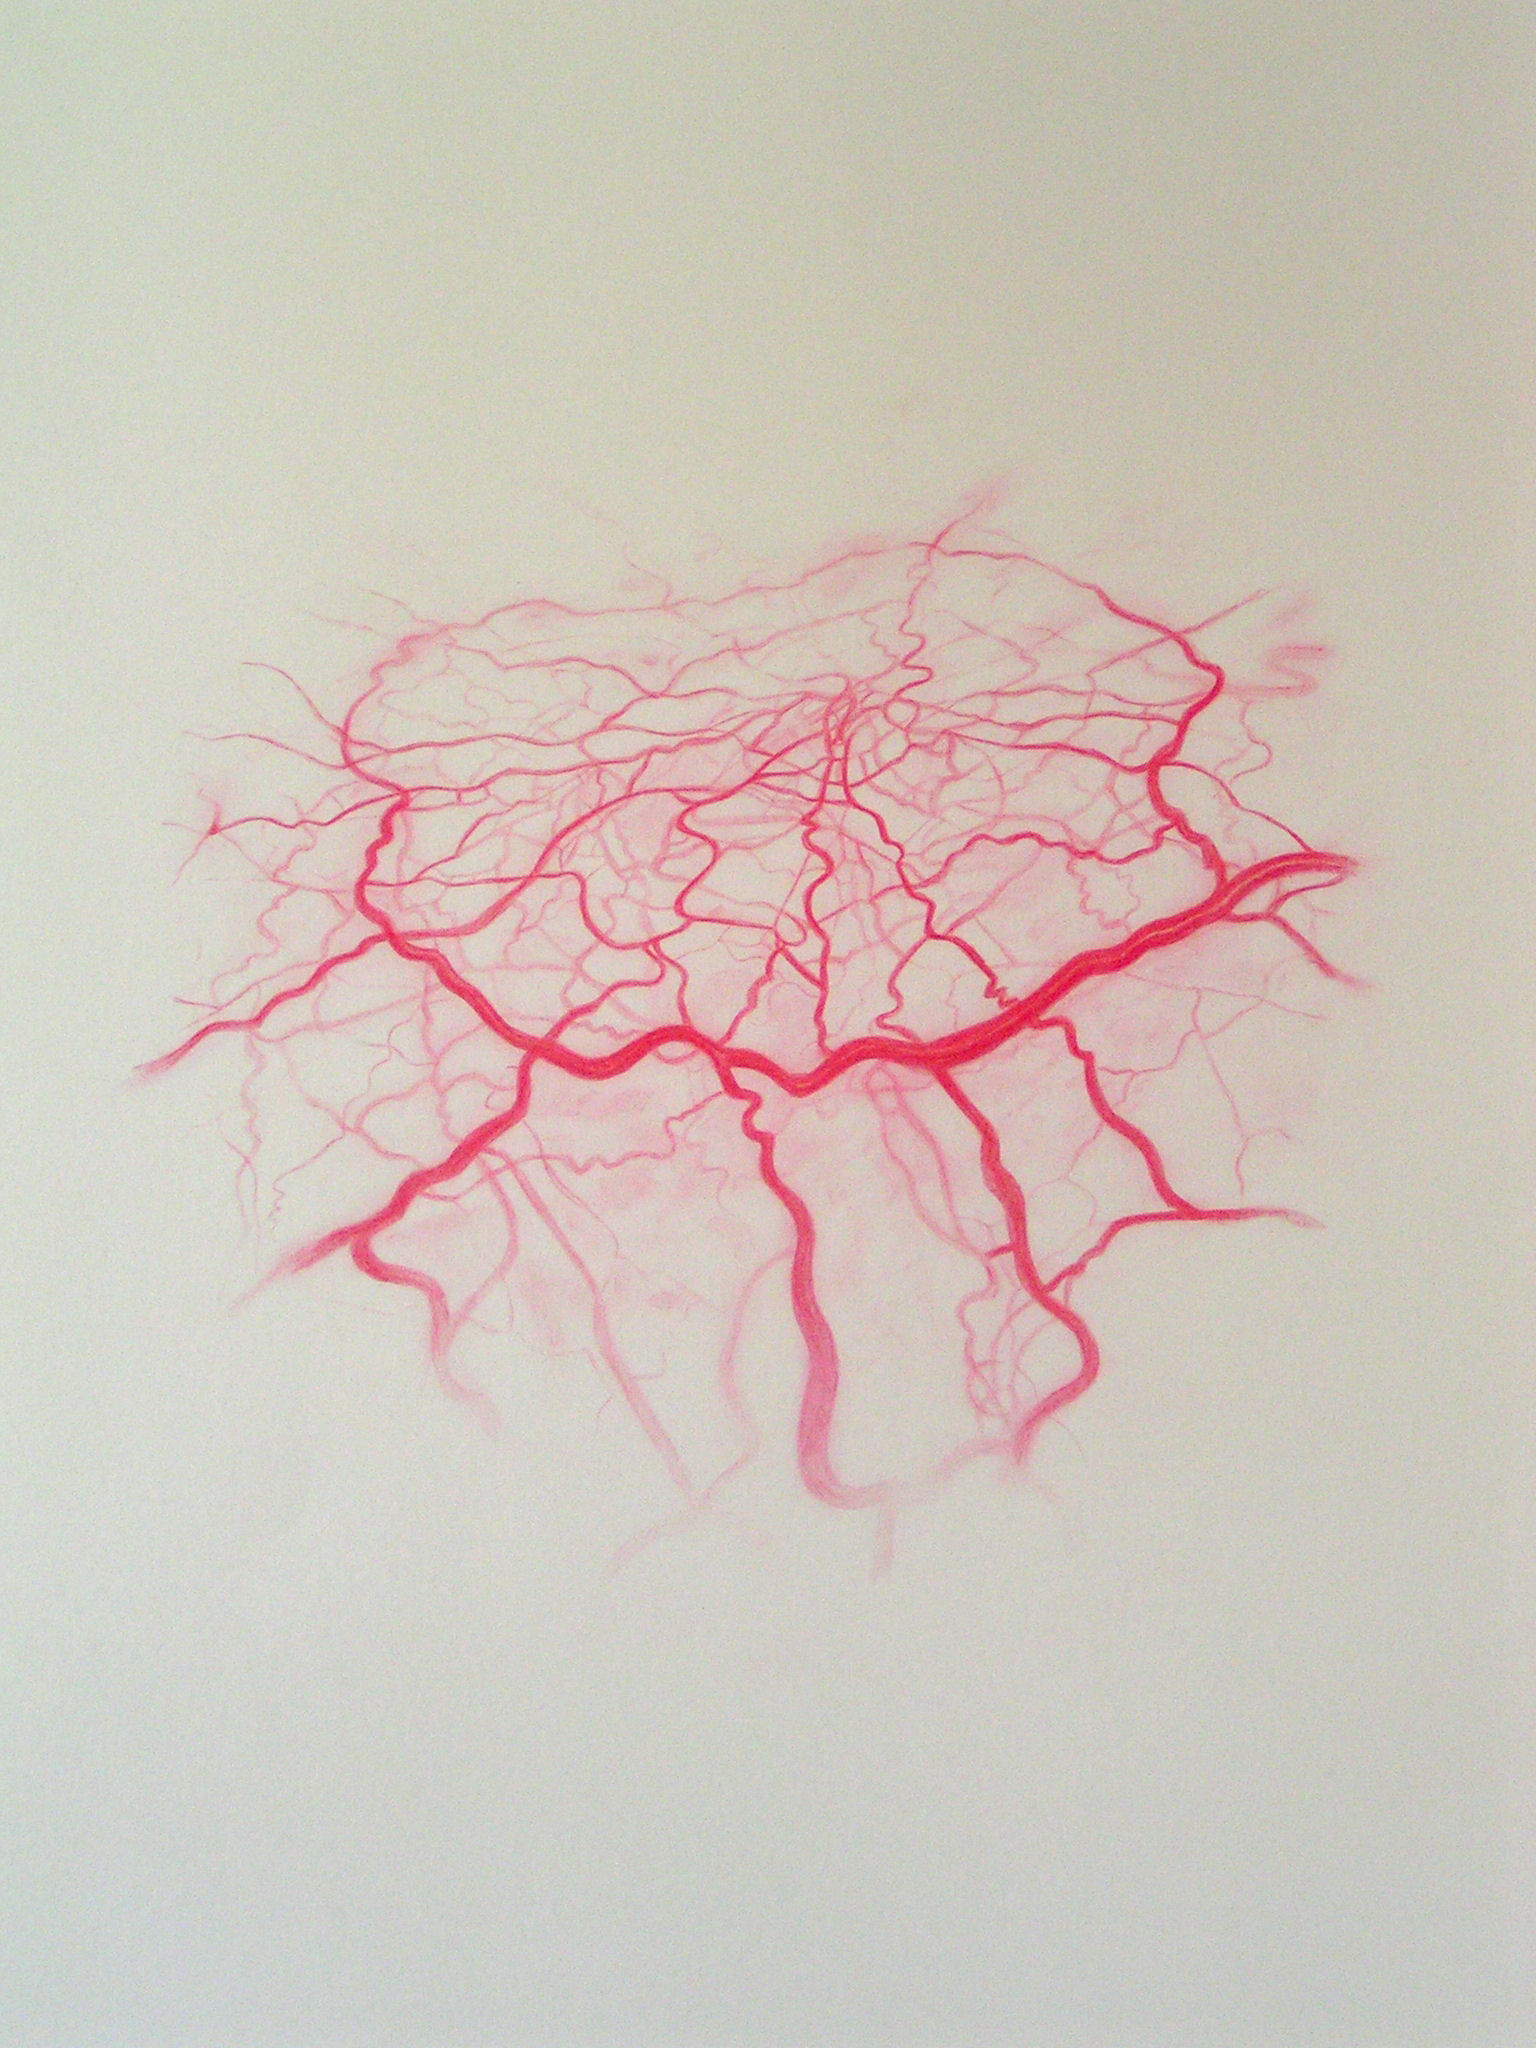 Emma J Williams 'Untitled Red Drawing No.11' 2008 pencil on paper